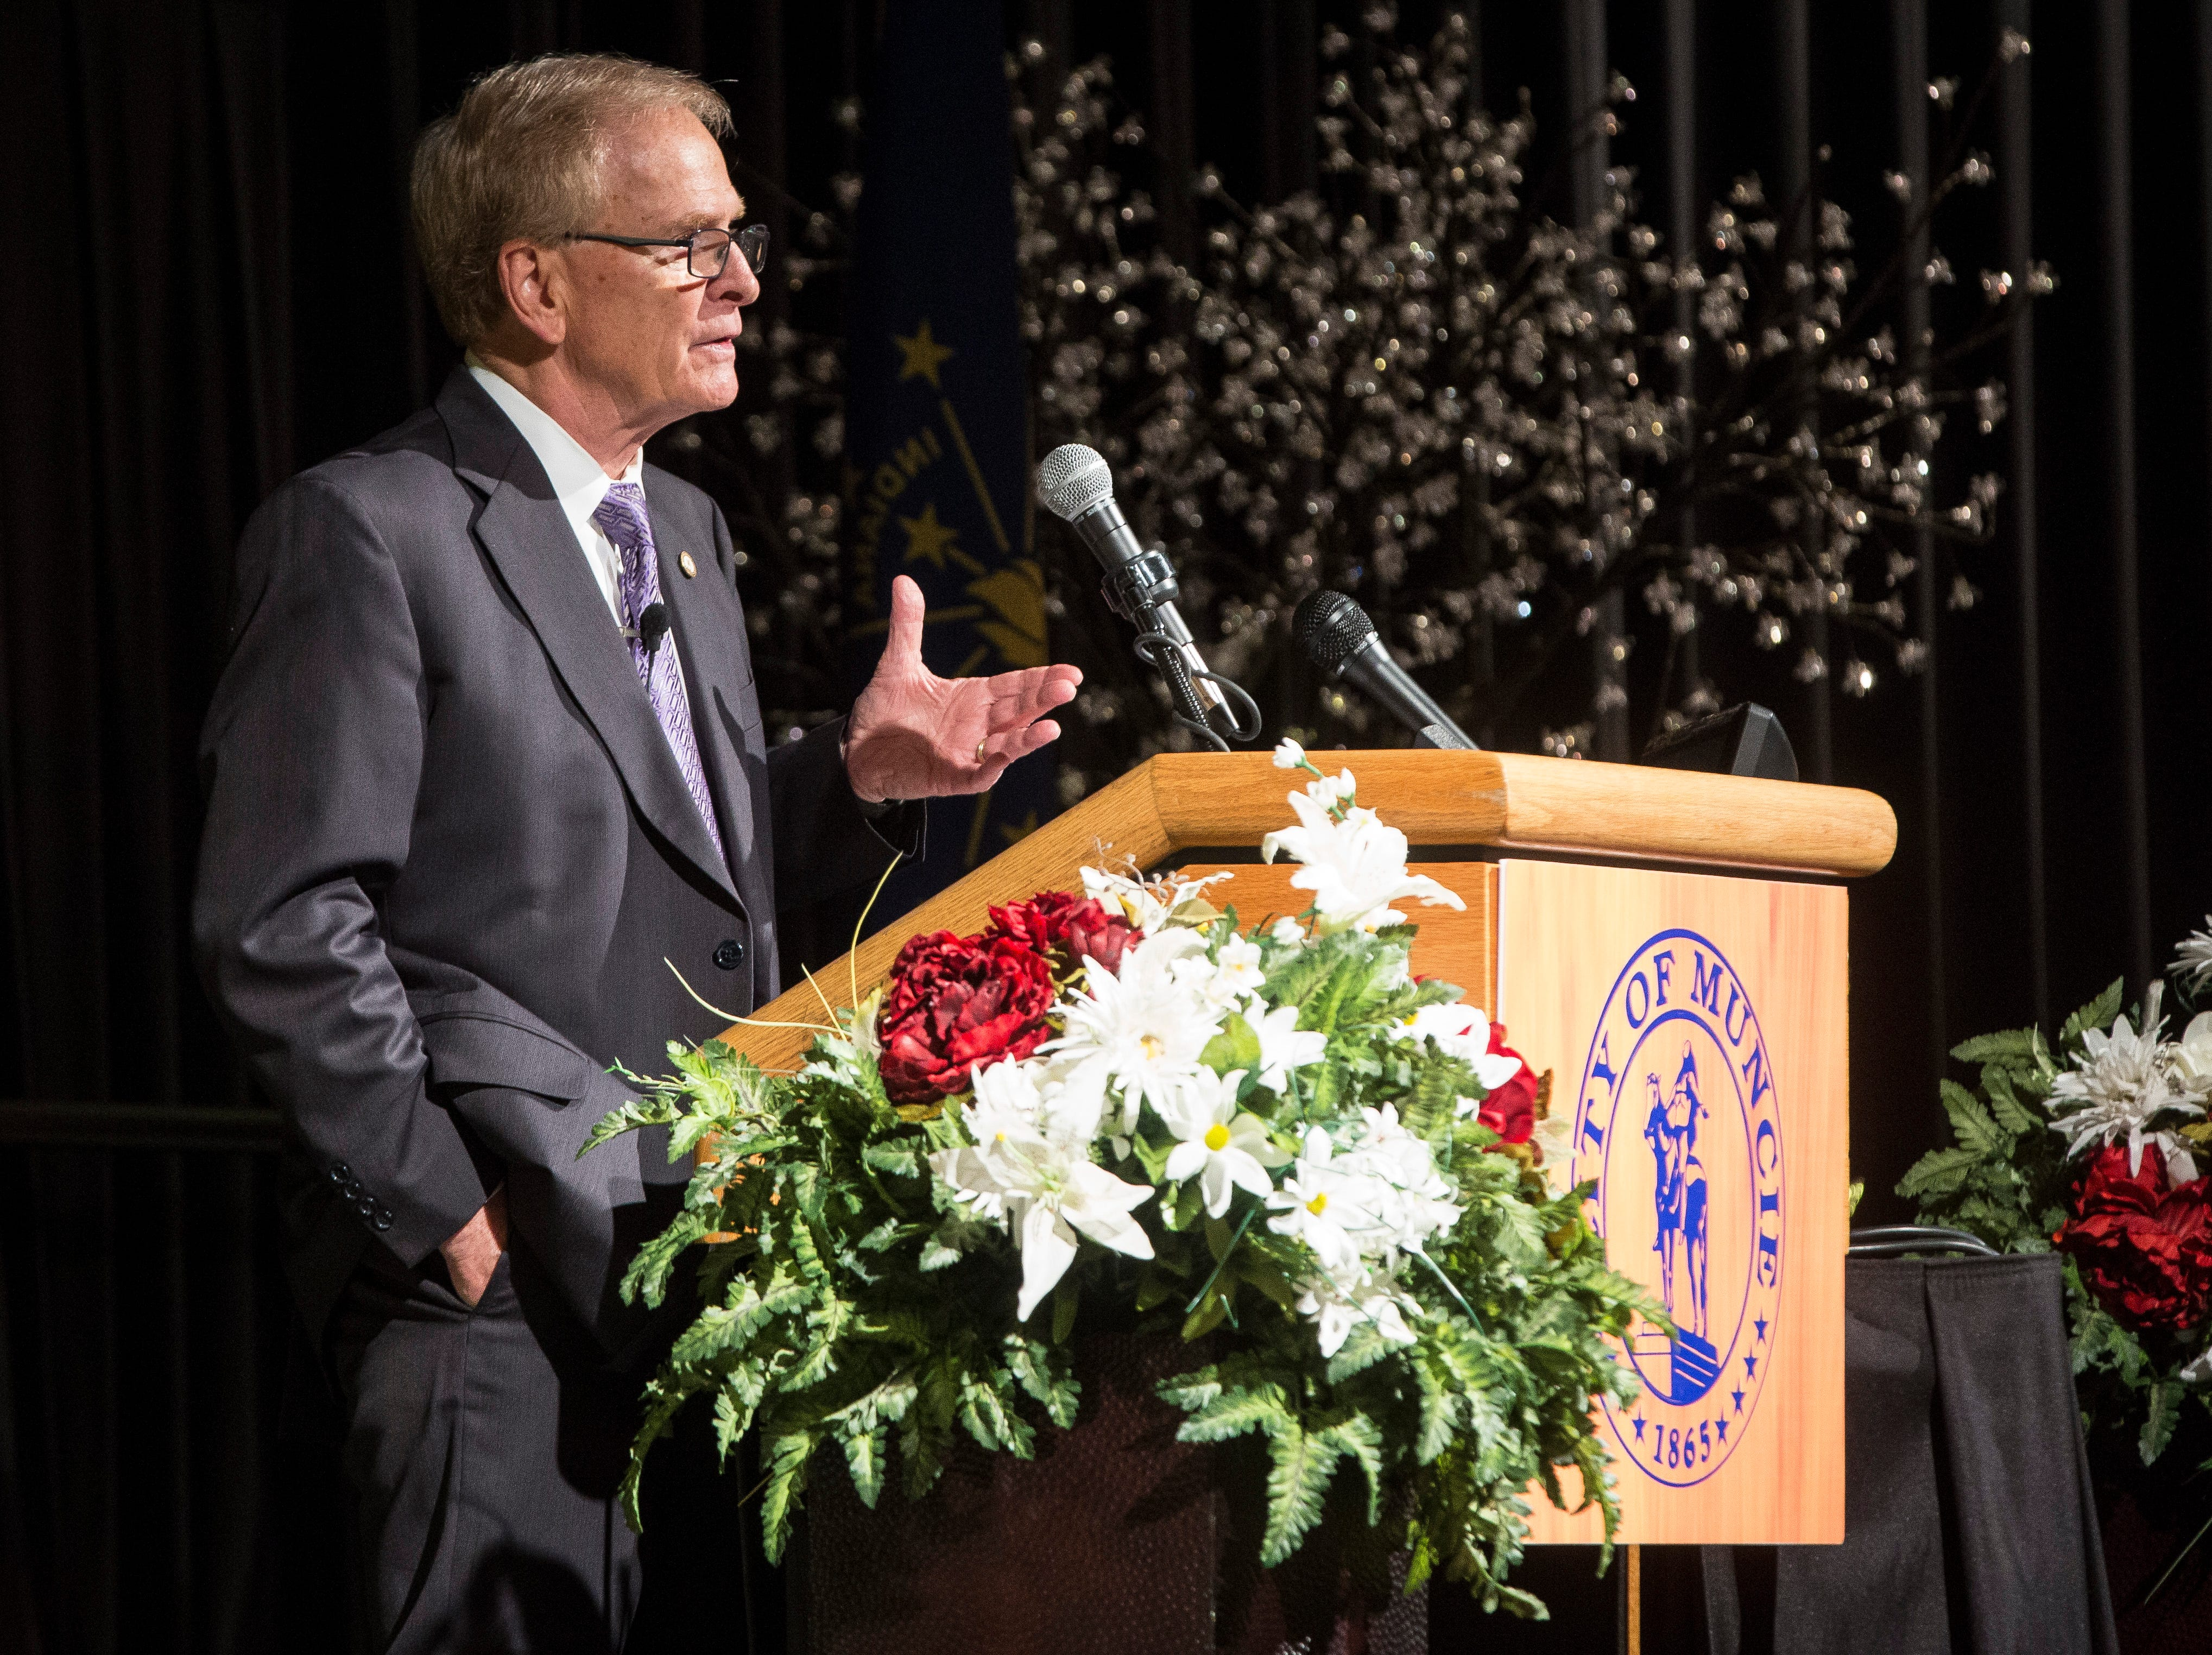 Muncie Mayor Dennis Tyler speaks to members of the community and other officials during his State of the City Address on April 16, 2019 at the Horizon Convention Center. This was Tyler's last annual address as his term as mayor ends at the end of the year.